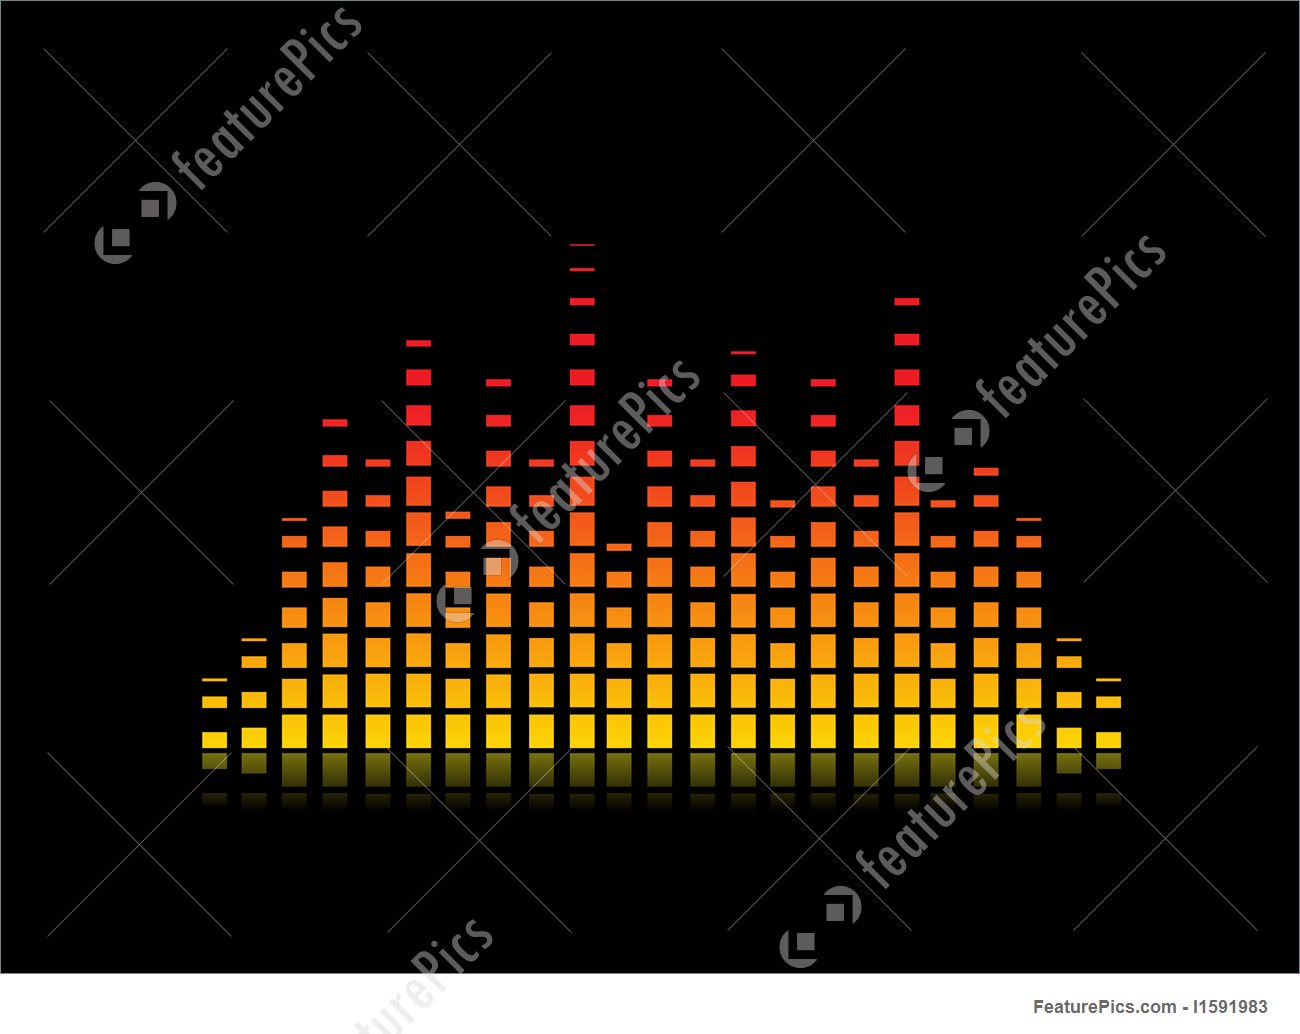 1300x1034 Vector Equalizer Digital Stock Illustration I1591983